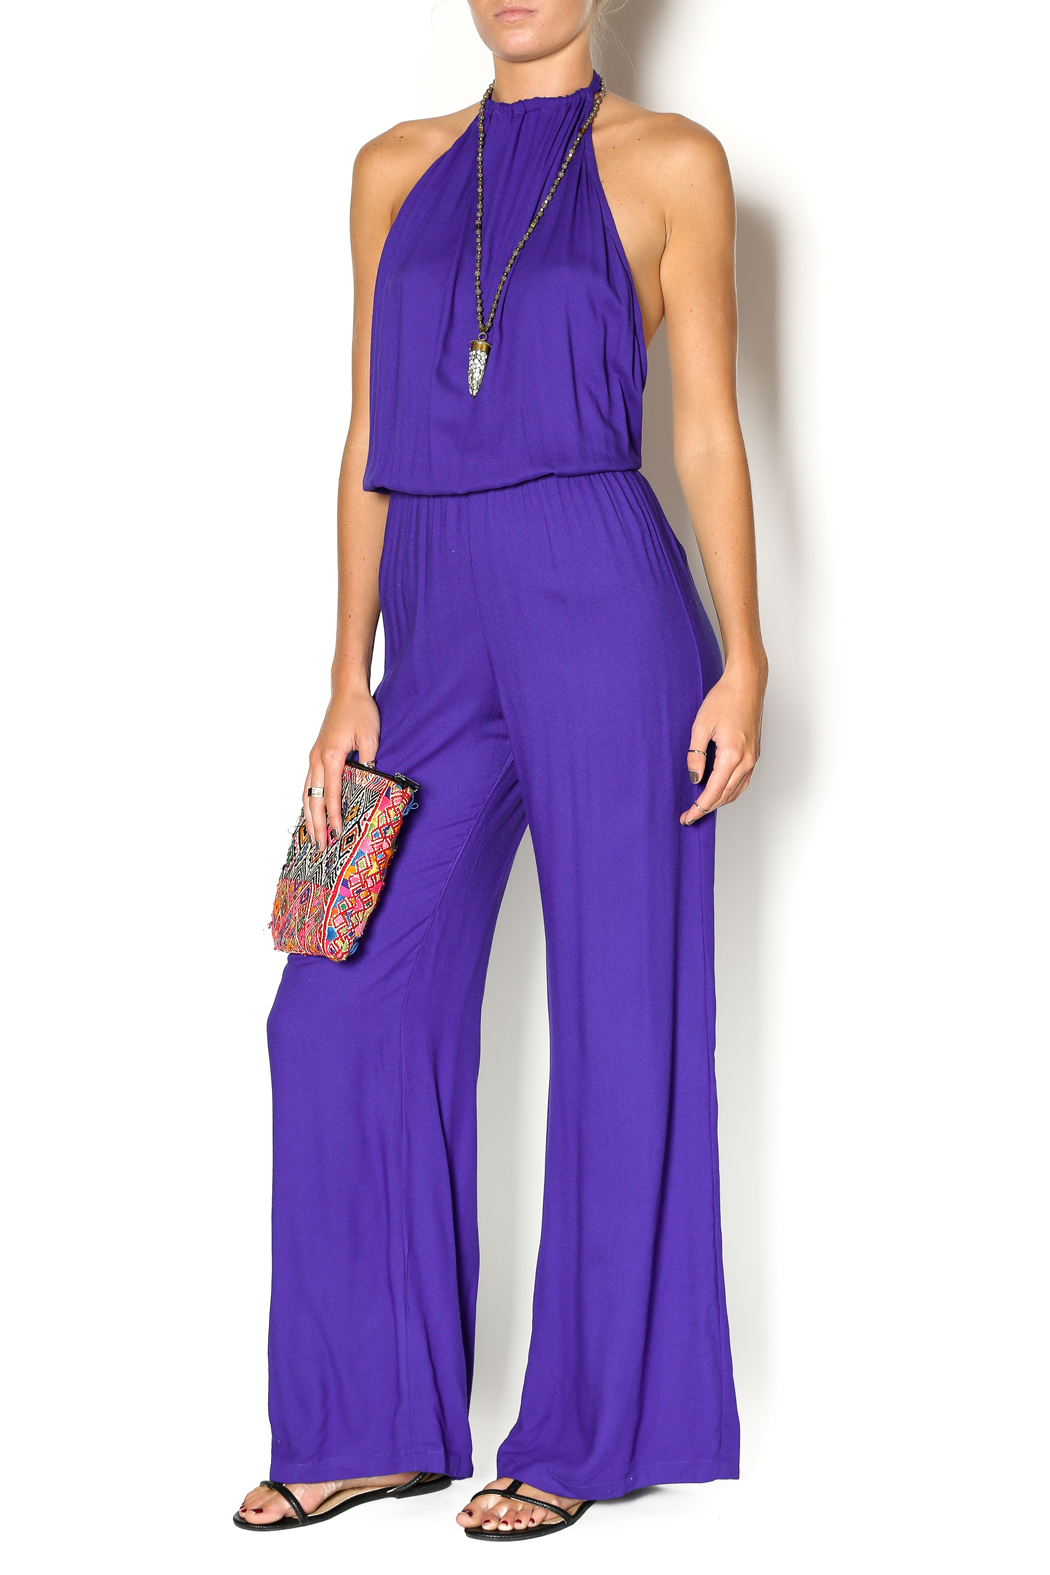 Indah Purple Jumpsuit from Texas by Confections Boutique ...